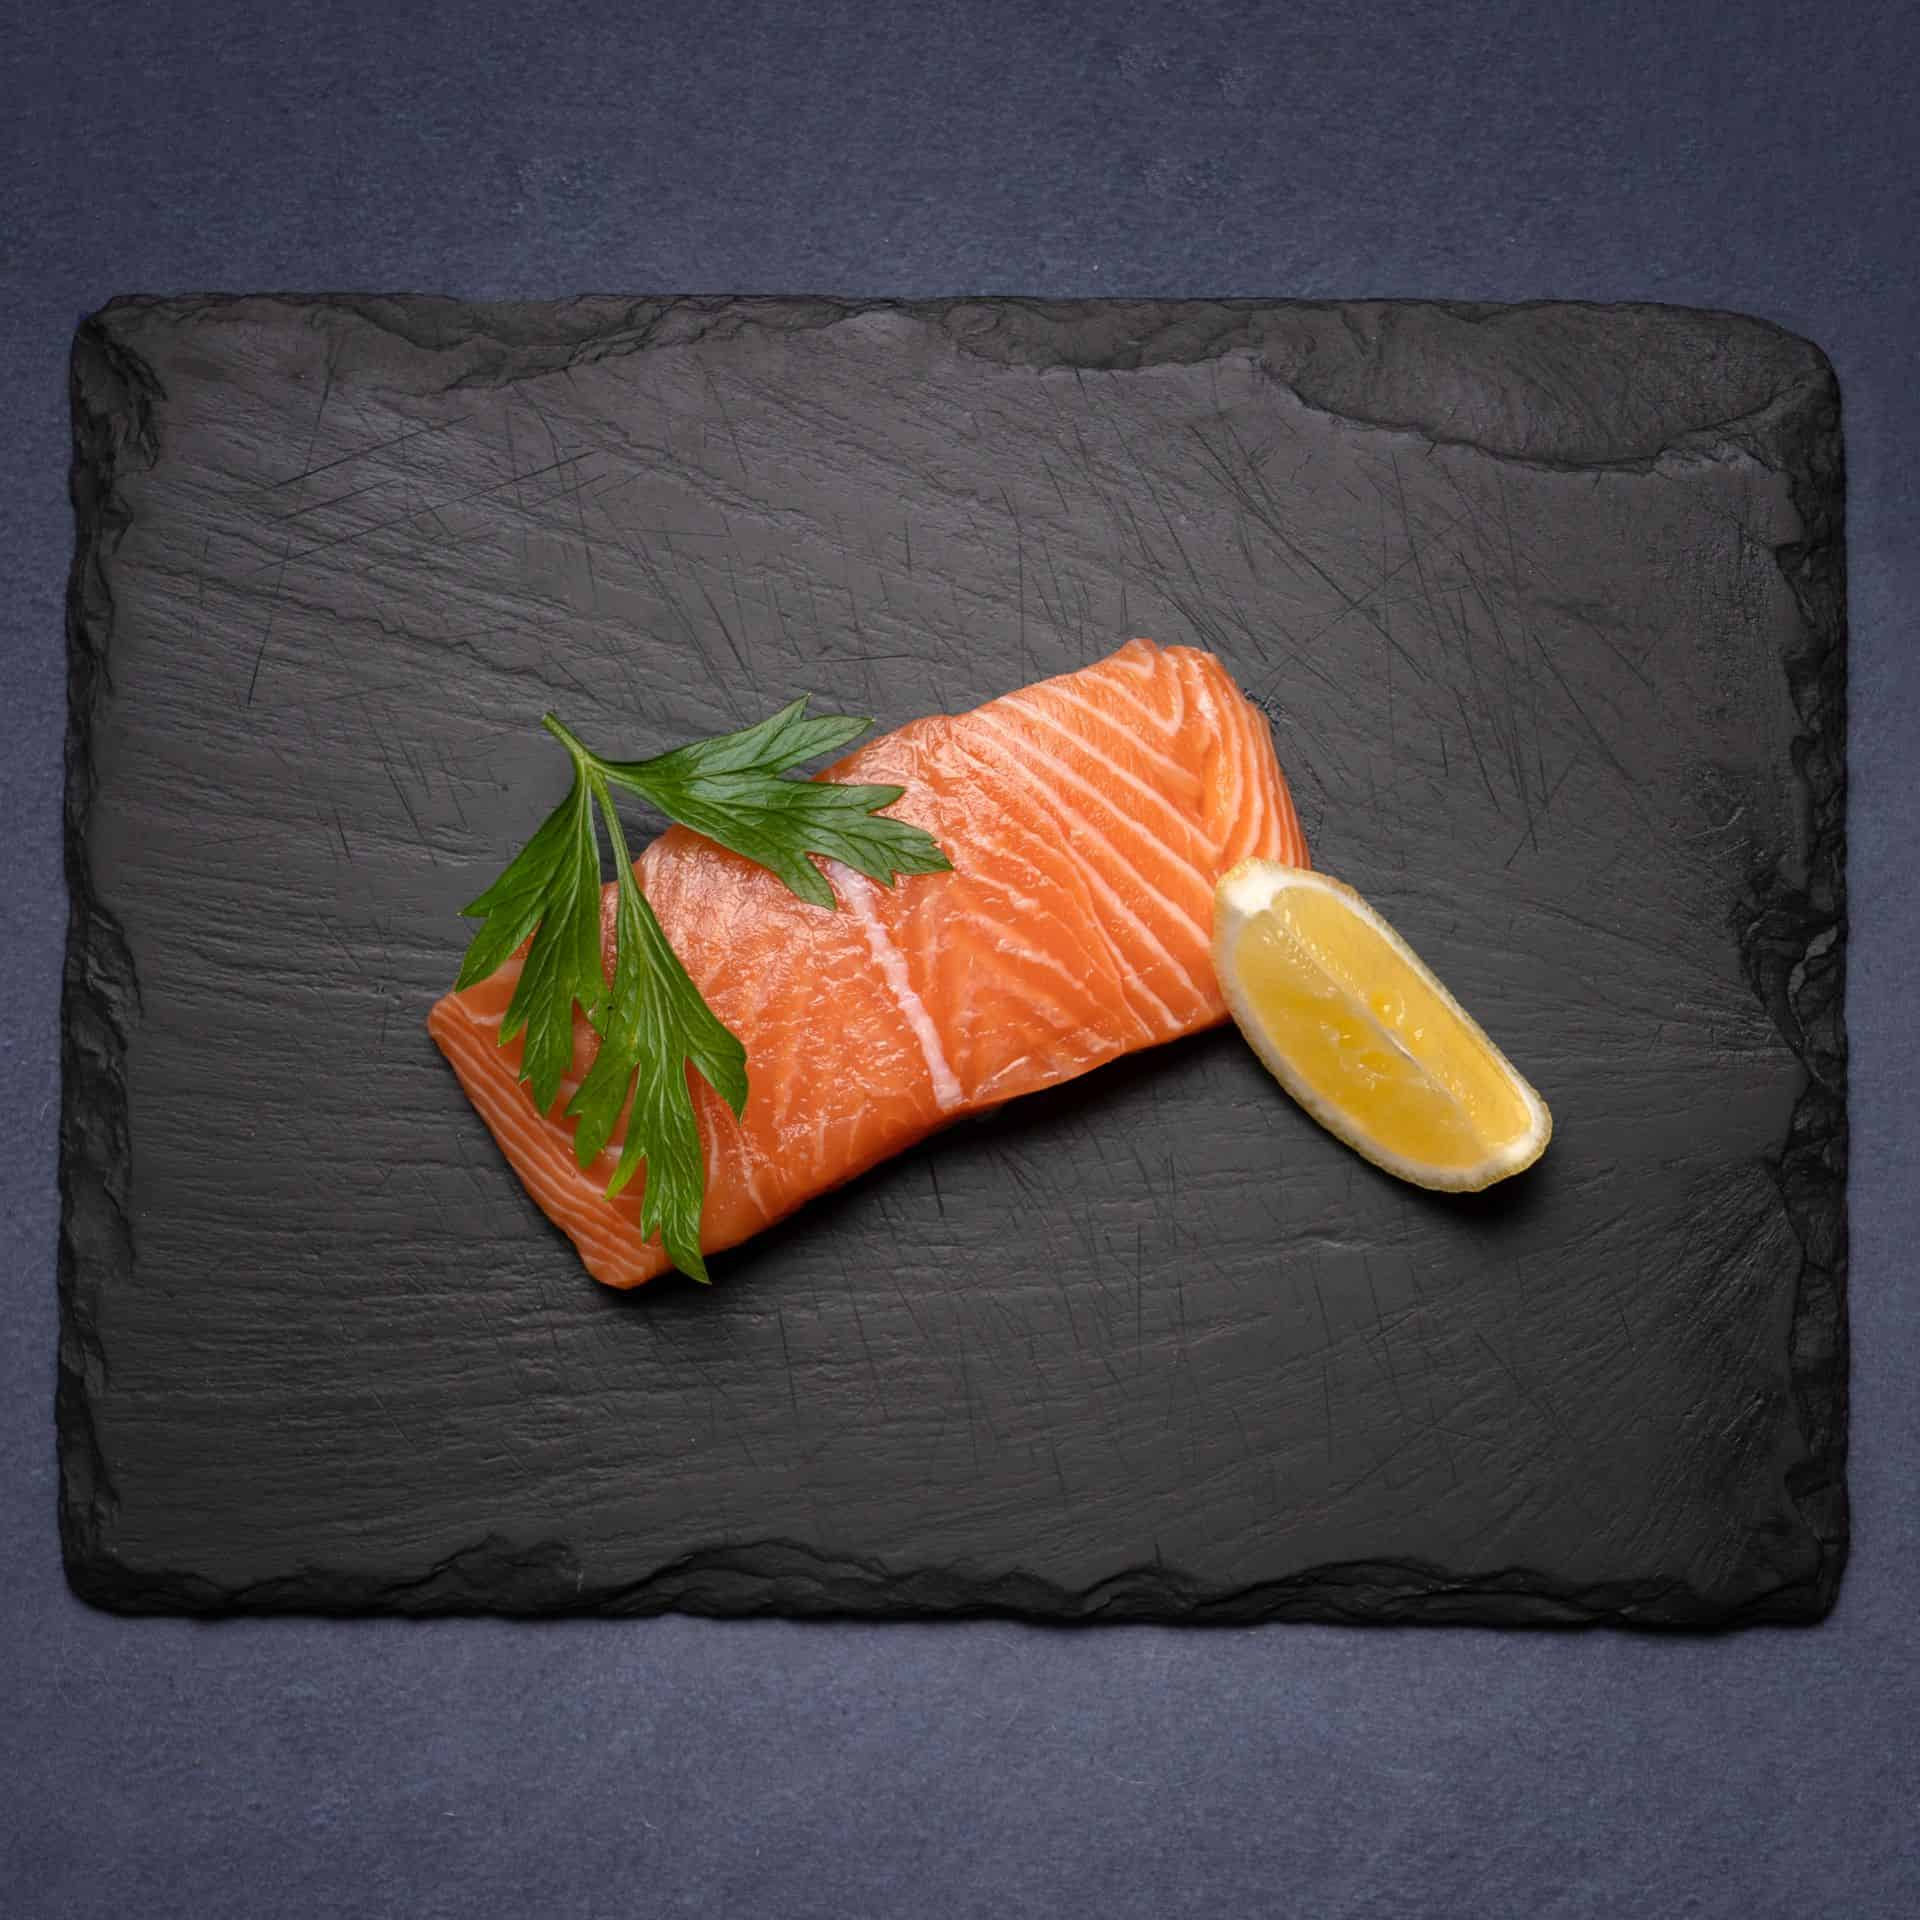 Fresh Scottish Salmon from Amity Fish Company